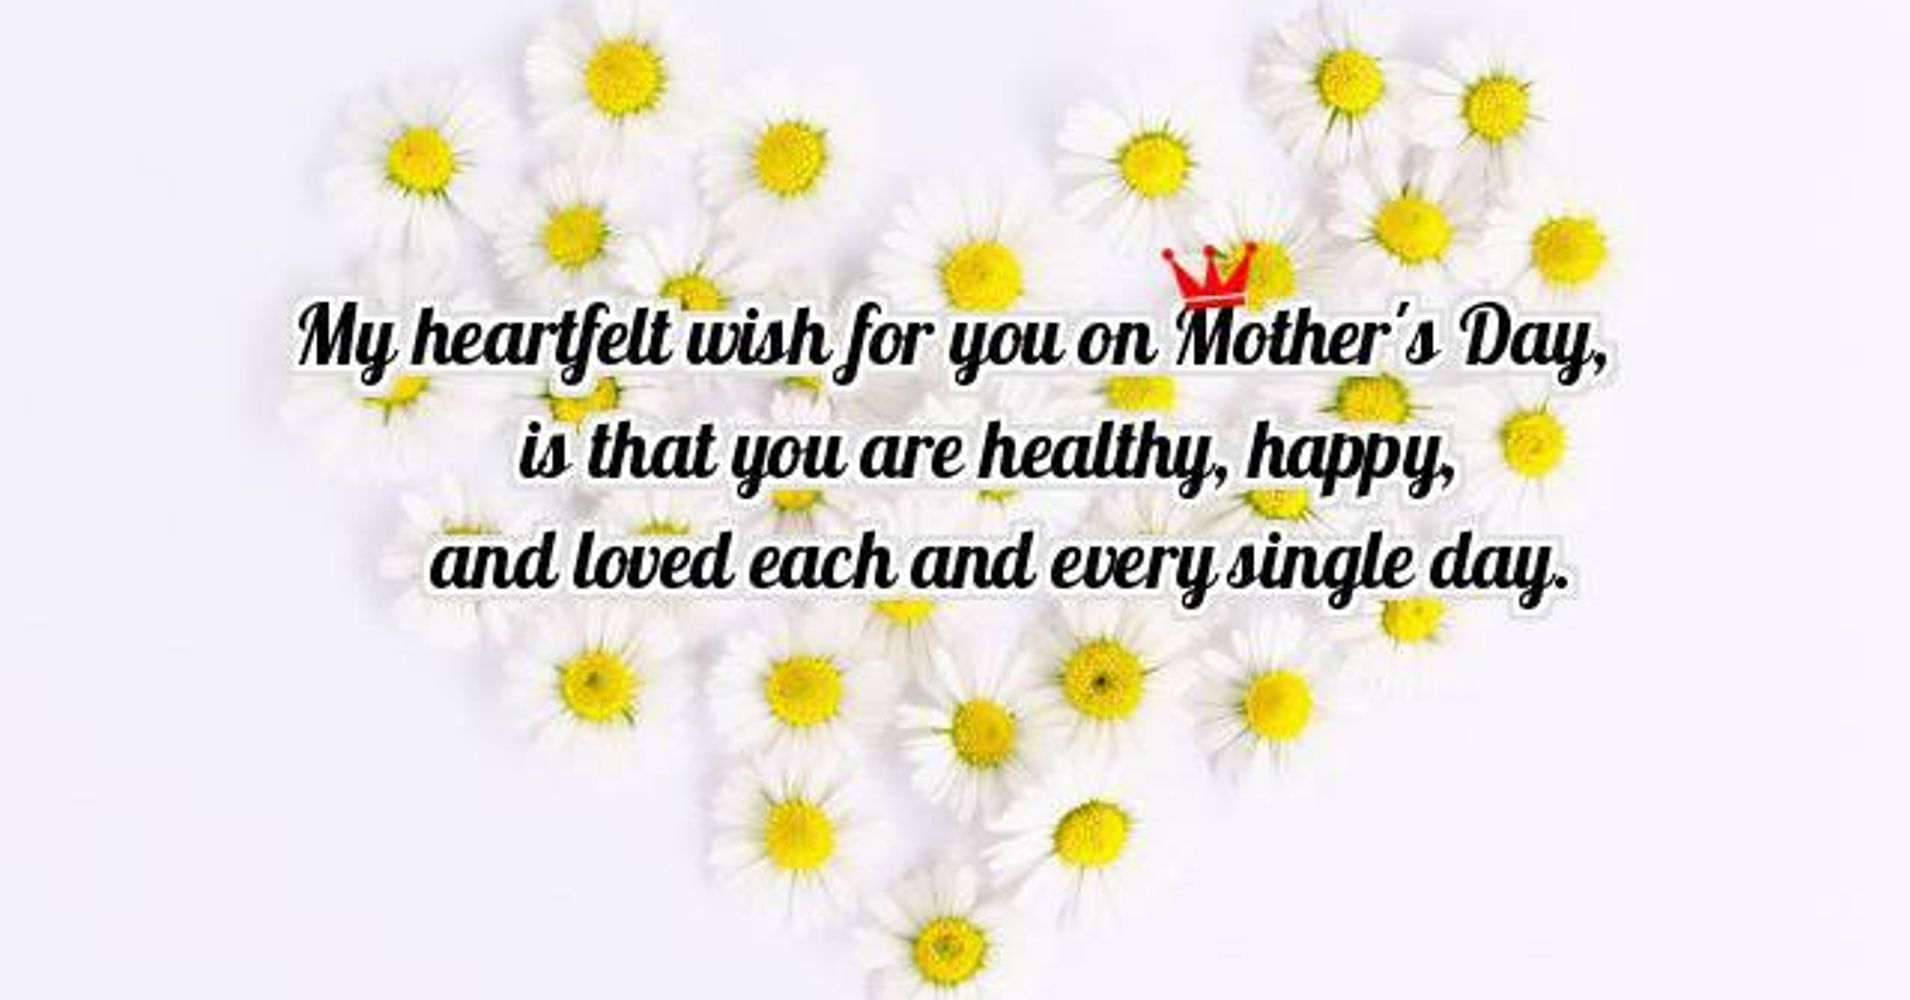 32 happy mothers day wishes messages and greetings huffpost kristyandbryce Choice Image